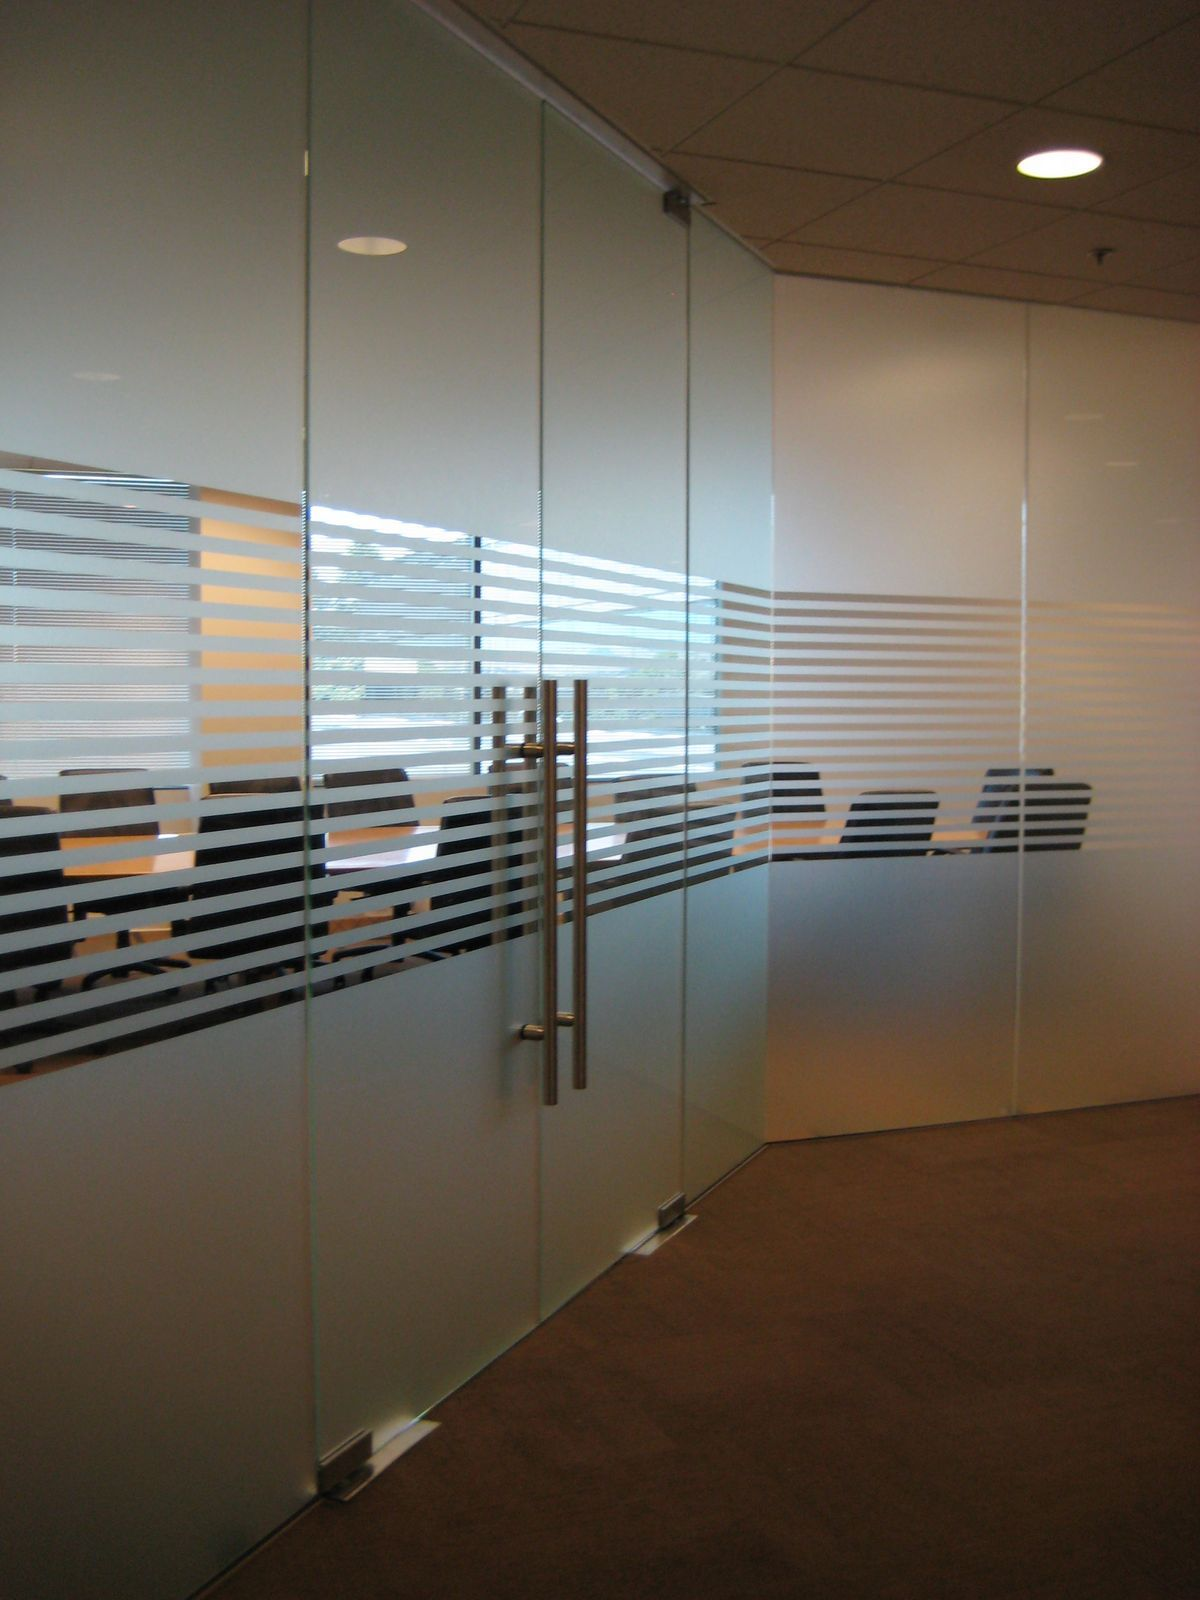 3m Commercial Window Tinting Privacy Film By Reflections Glass Glass Wall Office Glass Partition Designs Glass Film Design